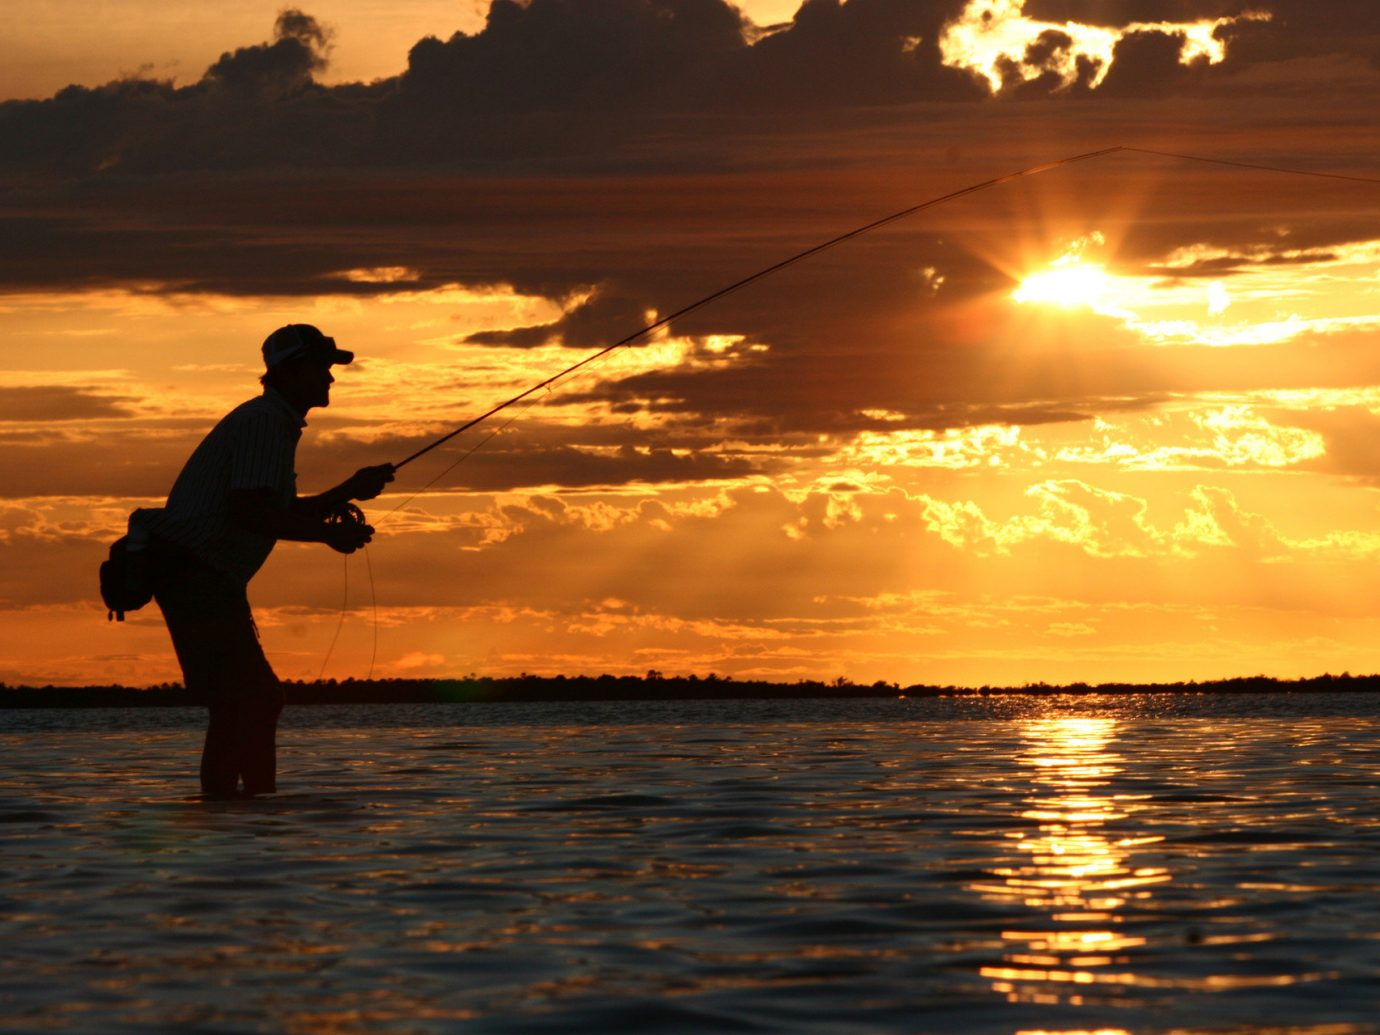 Trip Ideas water outdoor sky Sunset horizon Sea fishing cloud morning evening dusk sunrise Ocean sunlight dawn silhouette